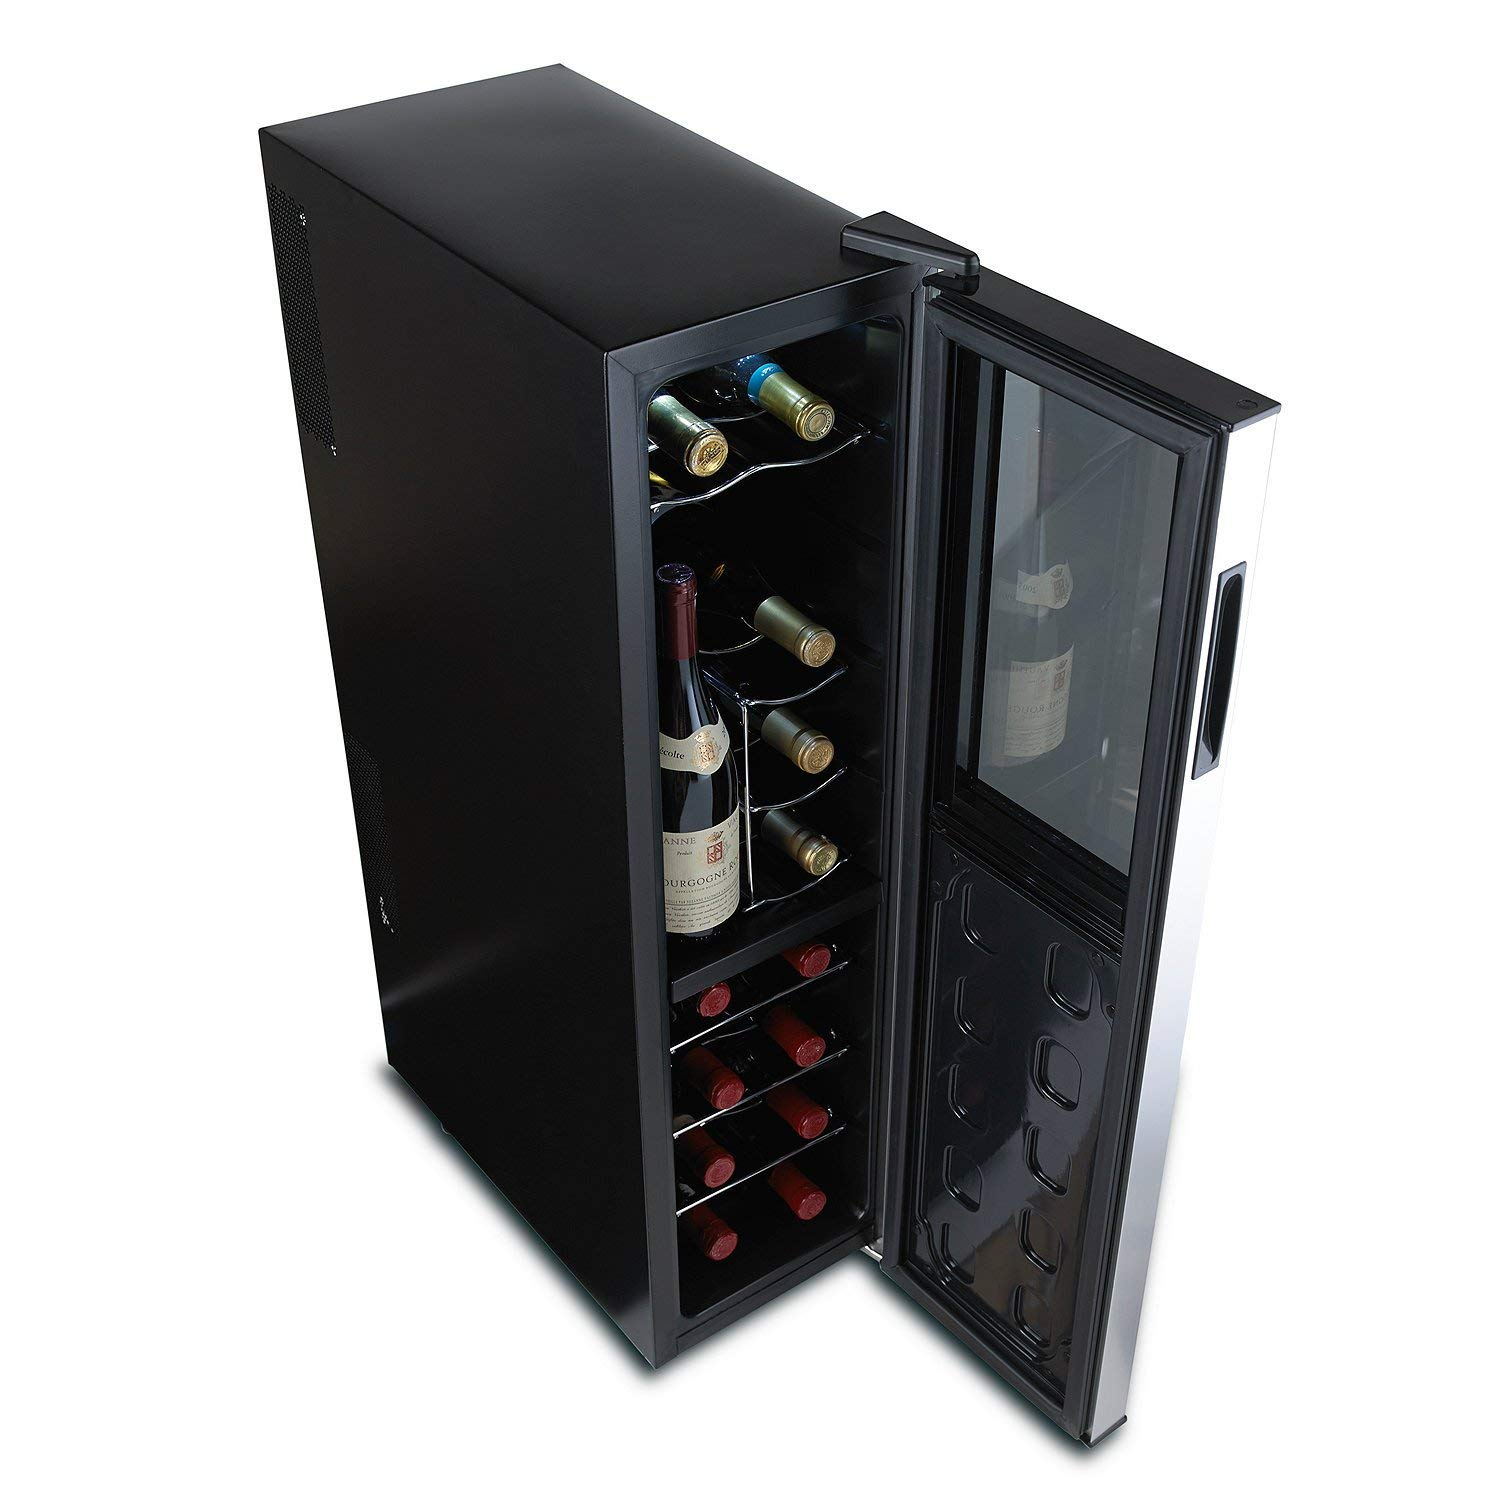 Wine Enthusiast Silent 18 Bottle Wine Refrigerator - Freestanding Slimline Upright Bottle Storage Wine Cooler, Black (Renewed) by Wine Enthusiast